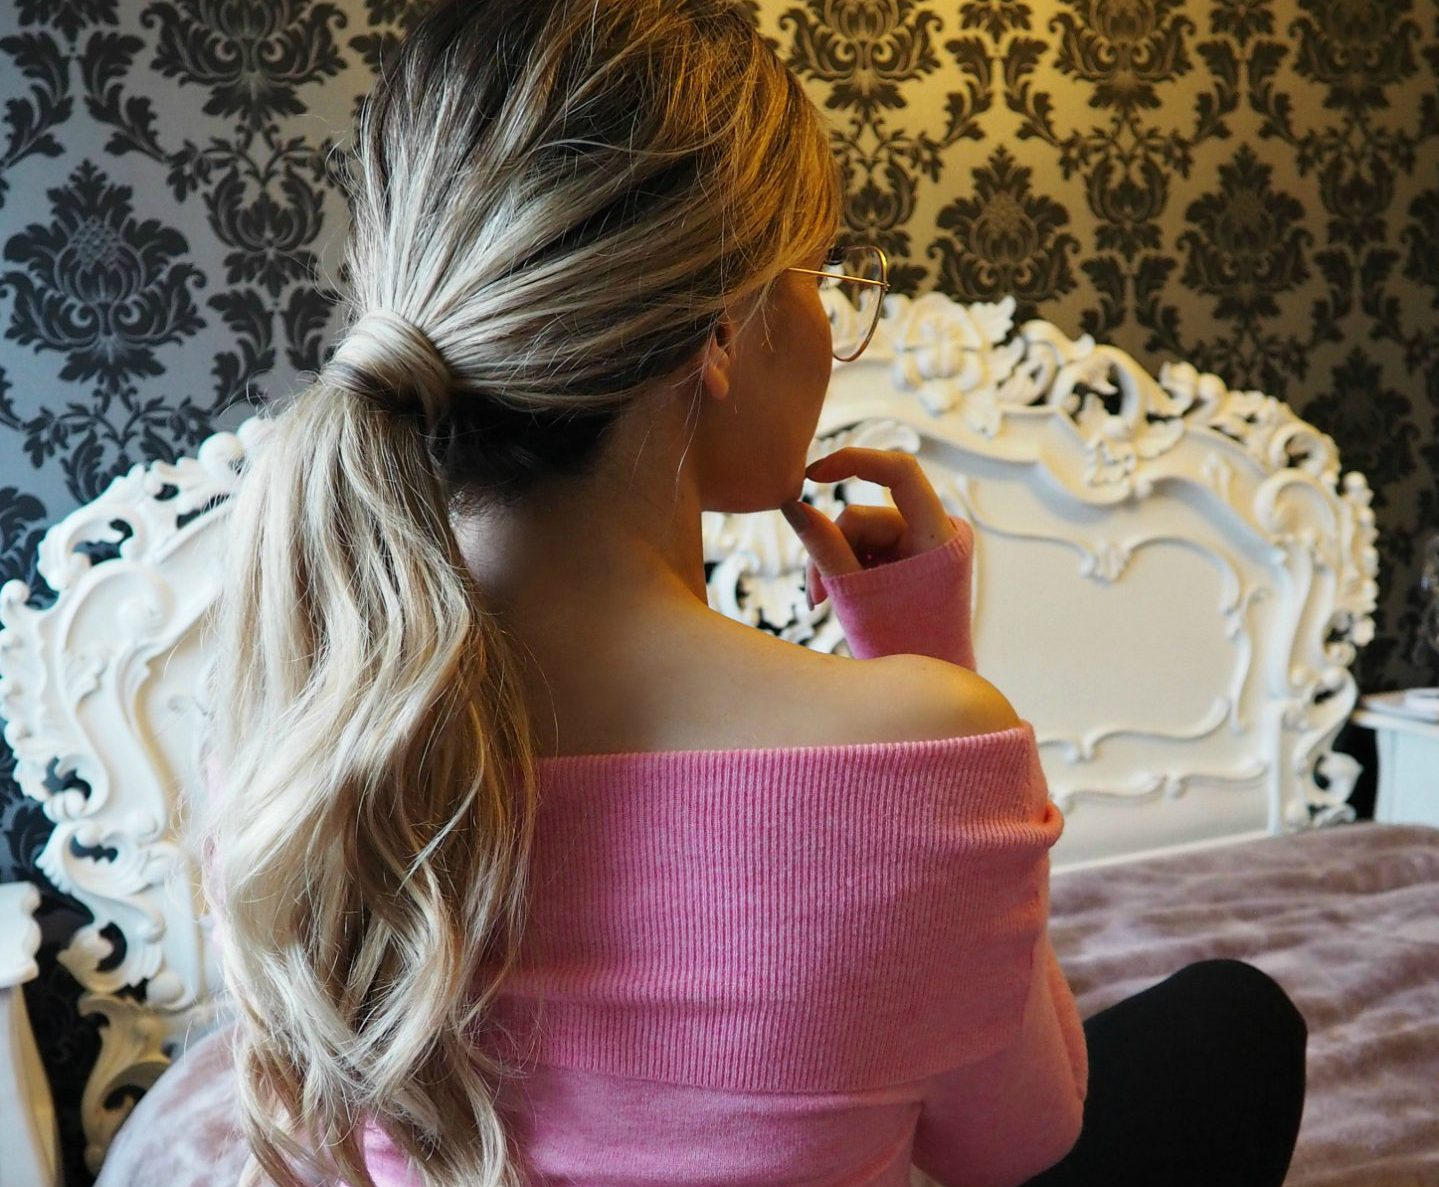 Ponytail Hairstyles for all Hair Types - Threads of love, Fashion Trends,  Clothes Styles, Portfolio, e magazine